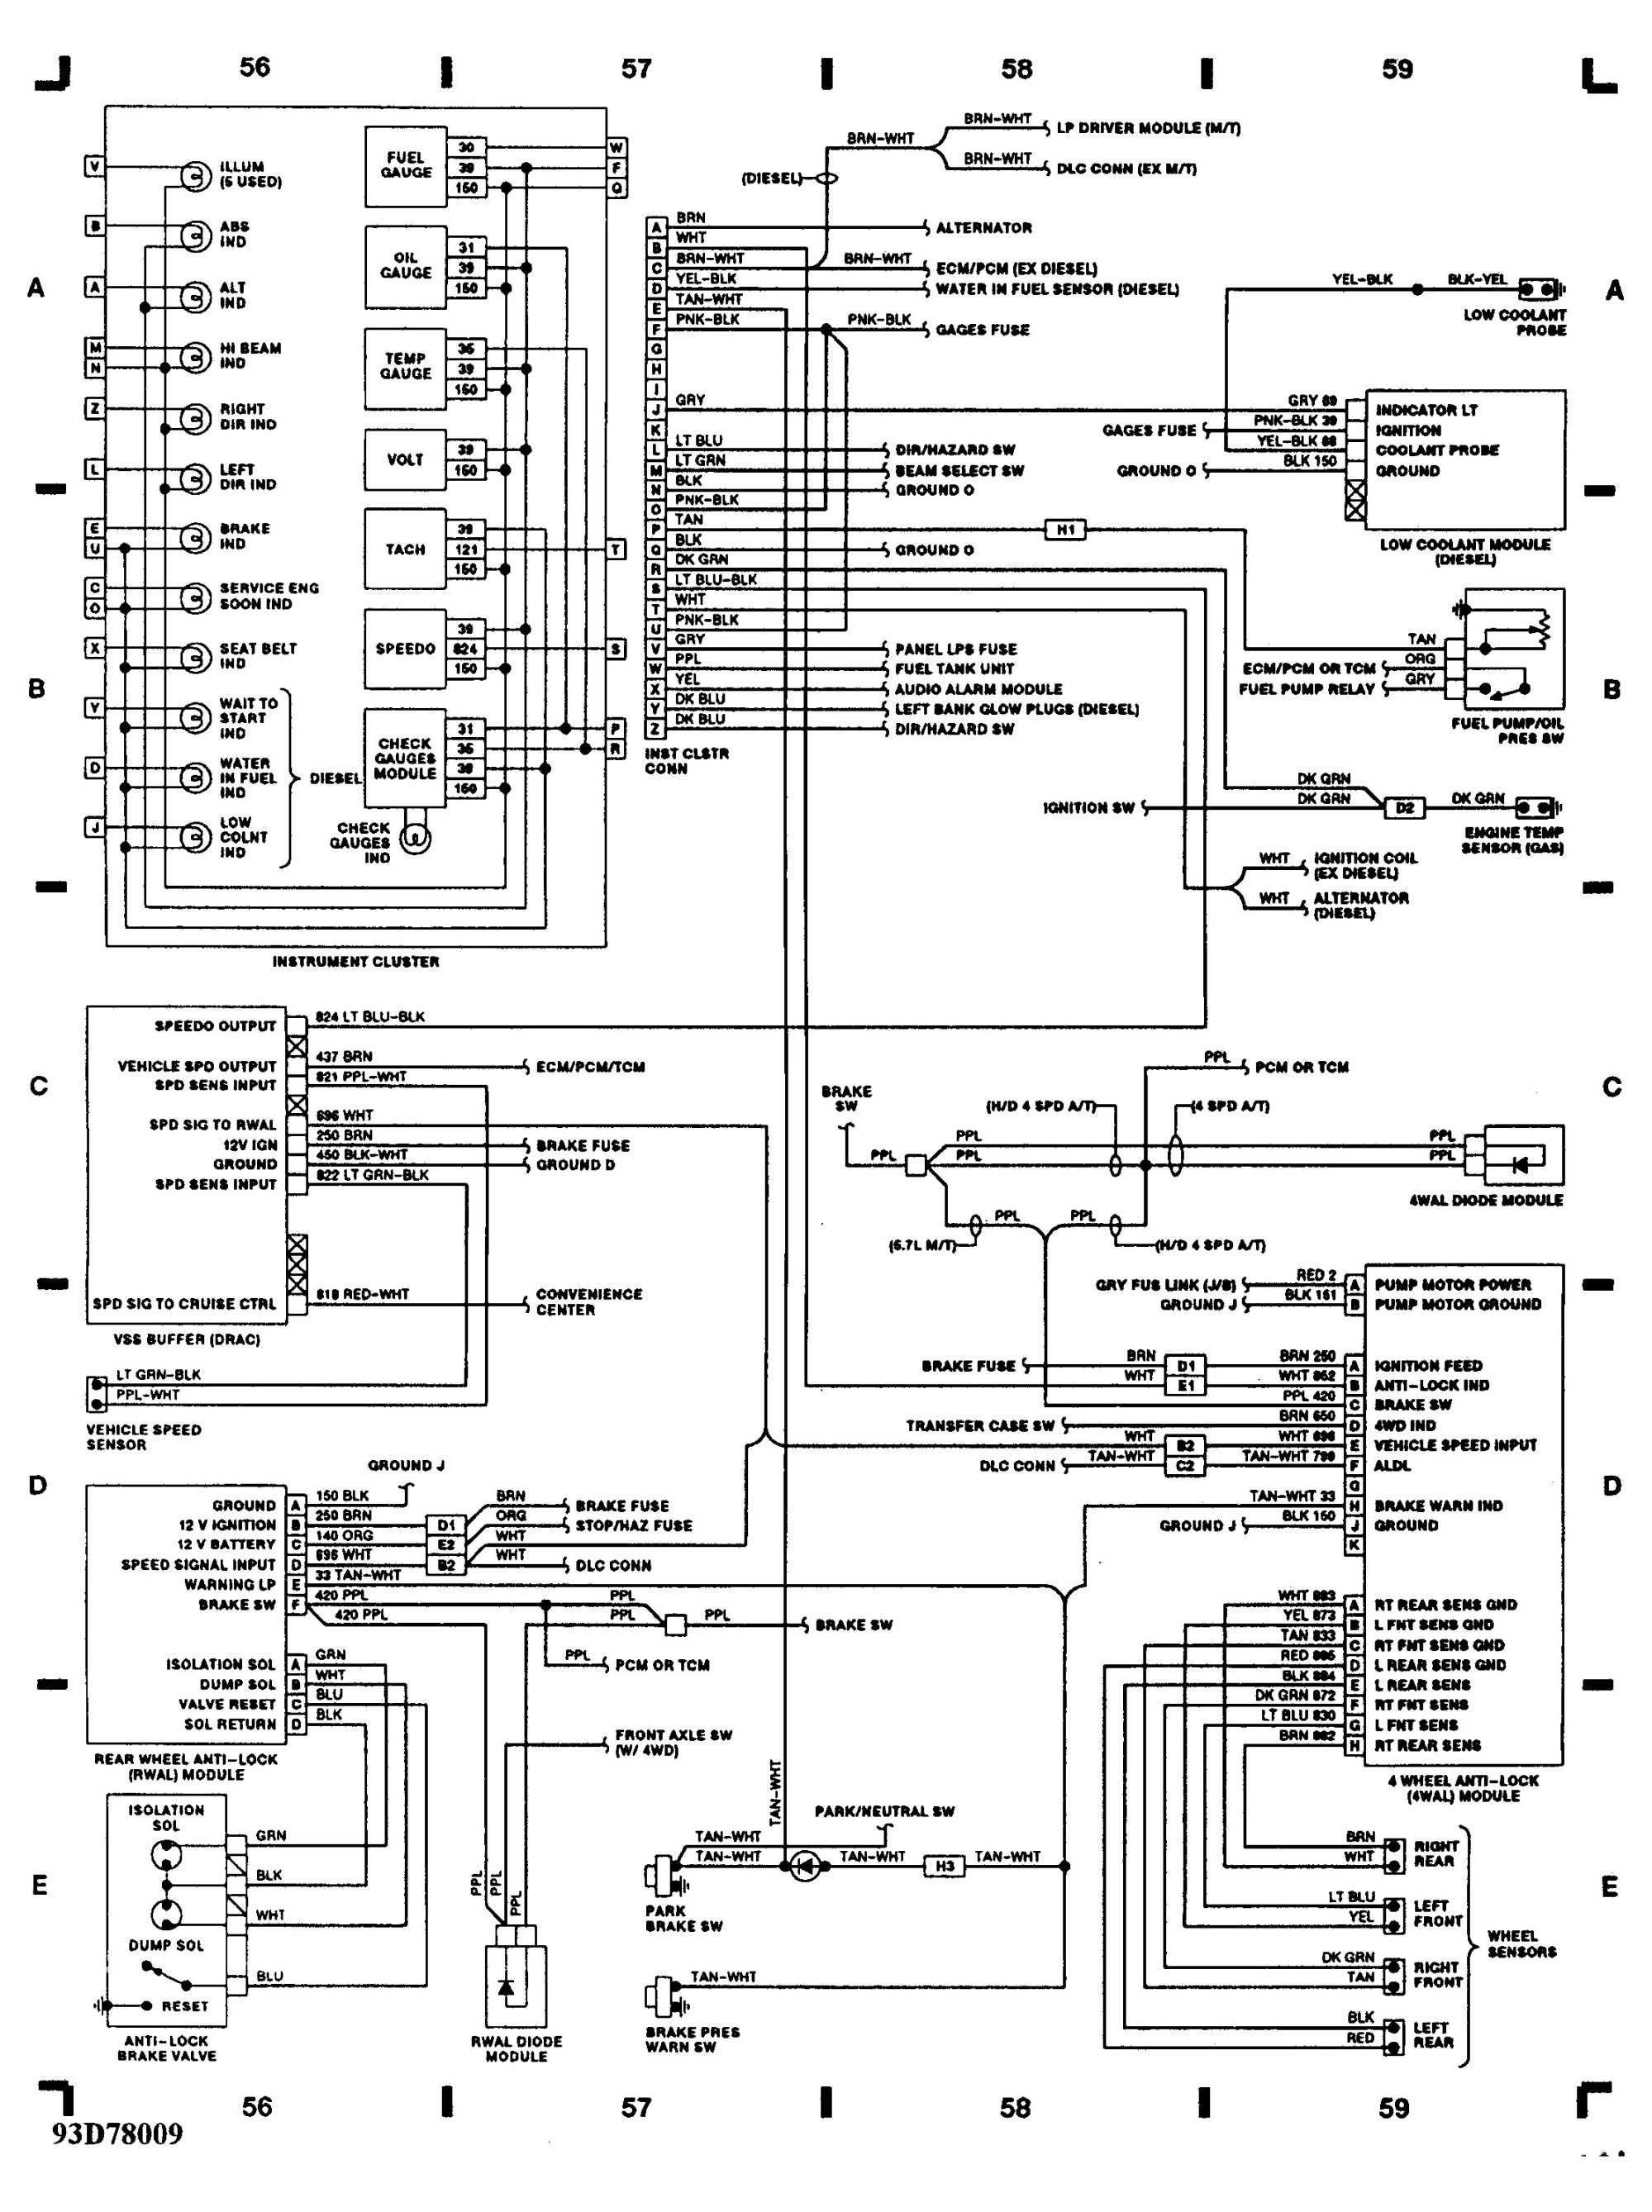 hight resolution of chevy 350 vortec wiring harness wiring diagram split 1995 vortec 350 wiring harness diagram wiring diagram